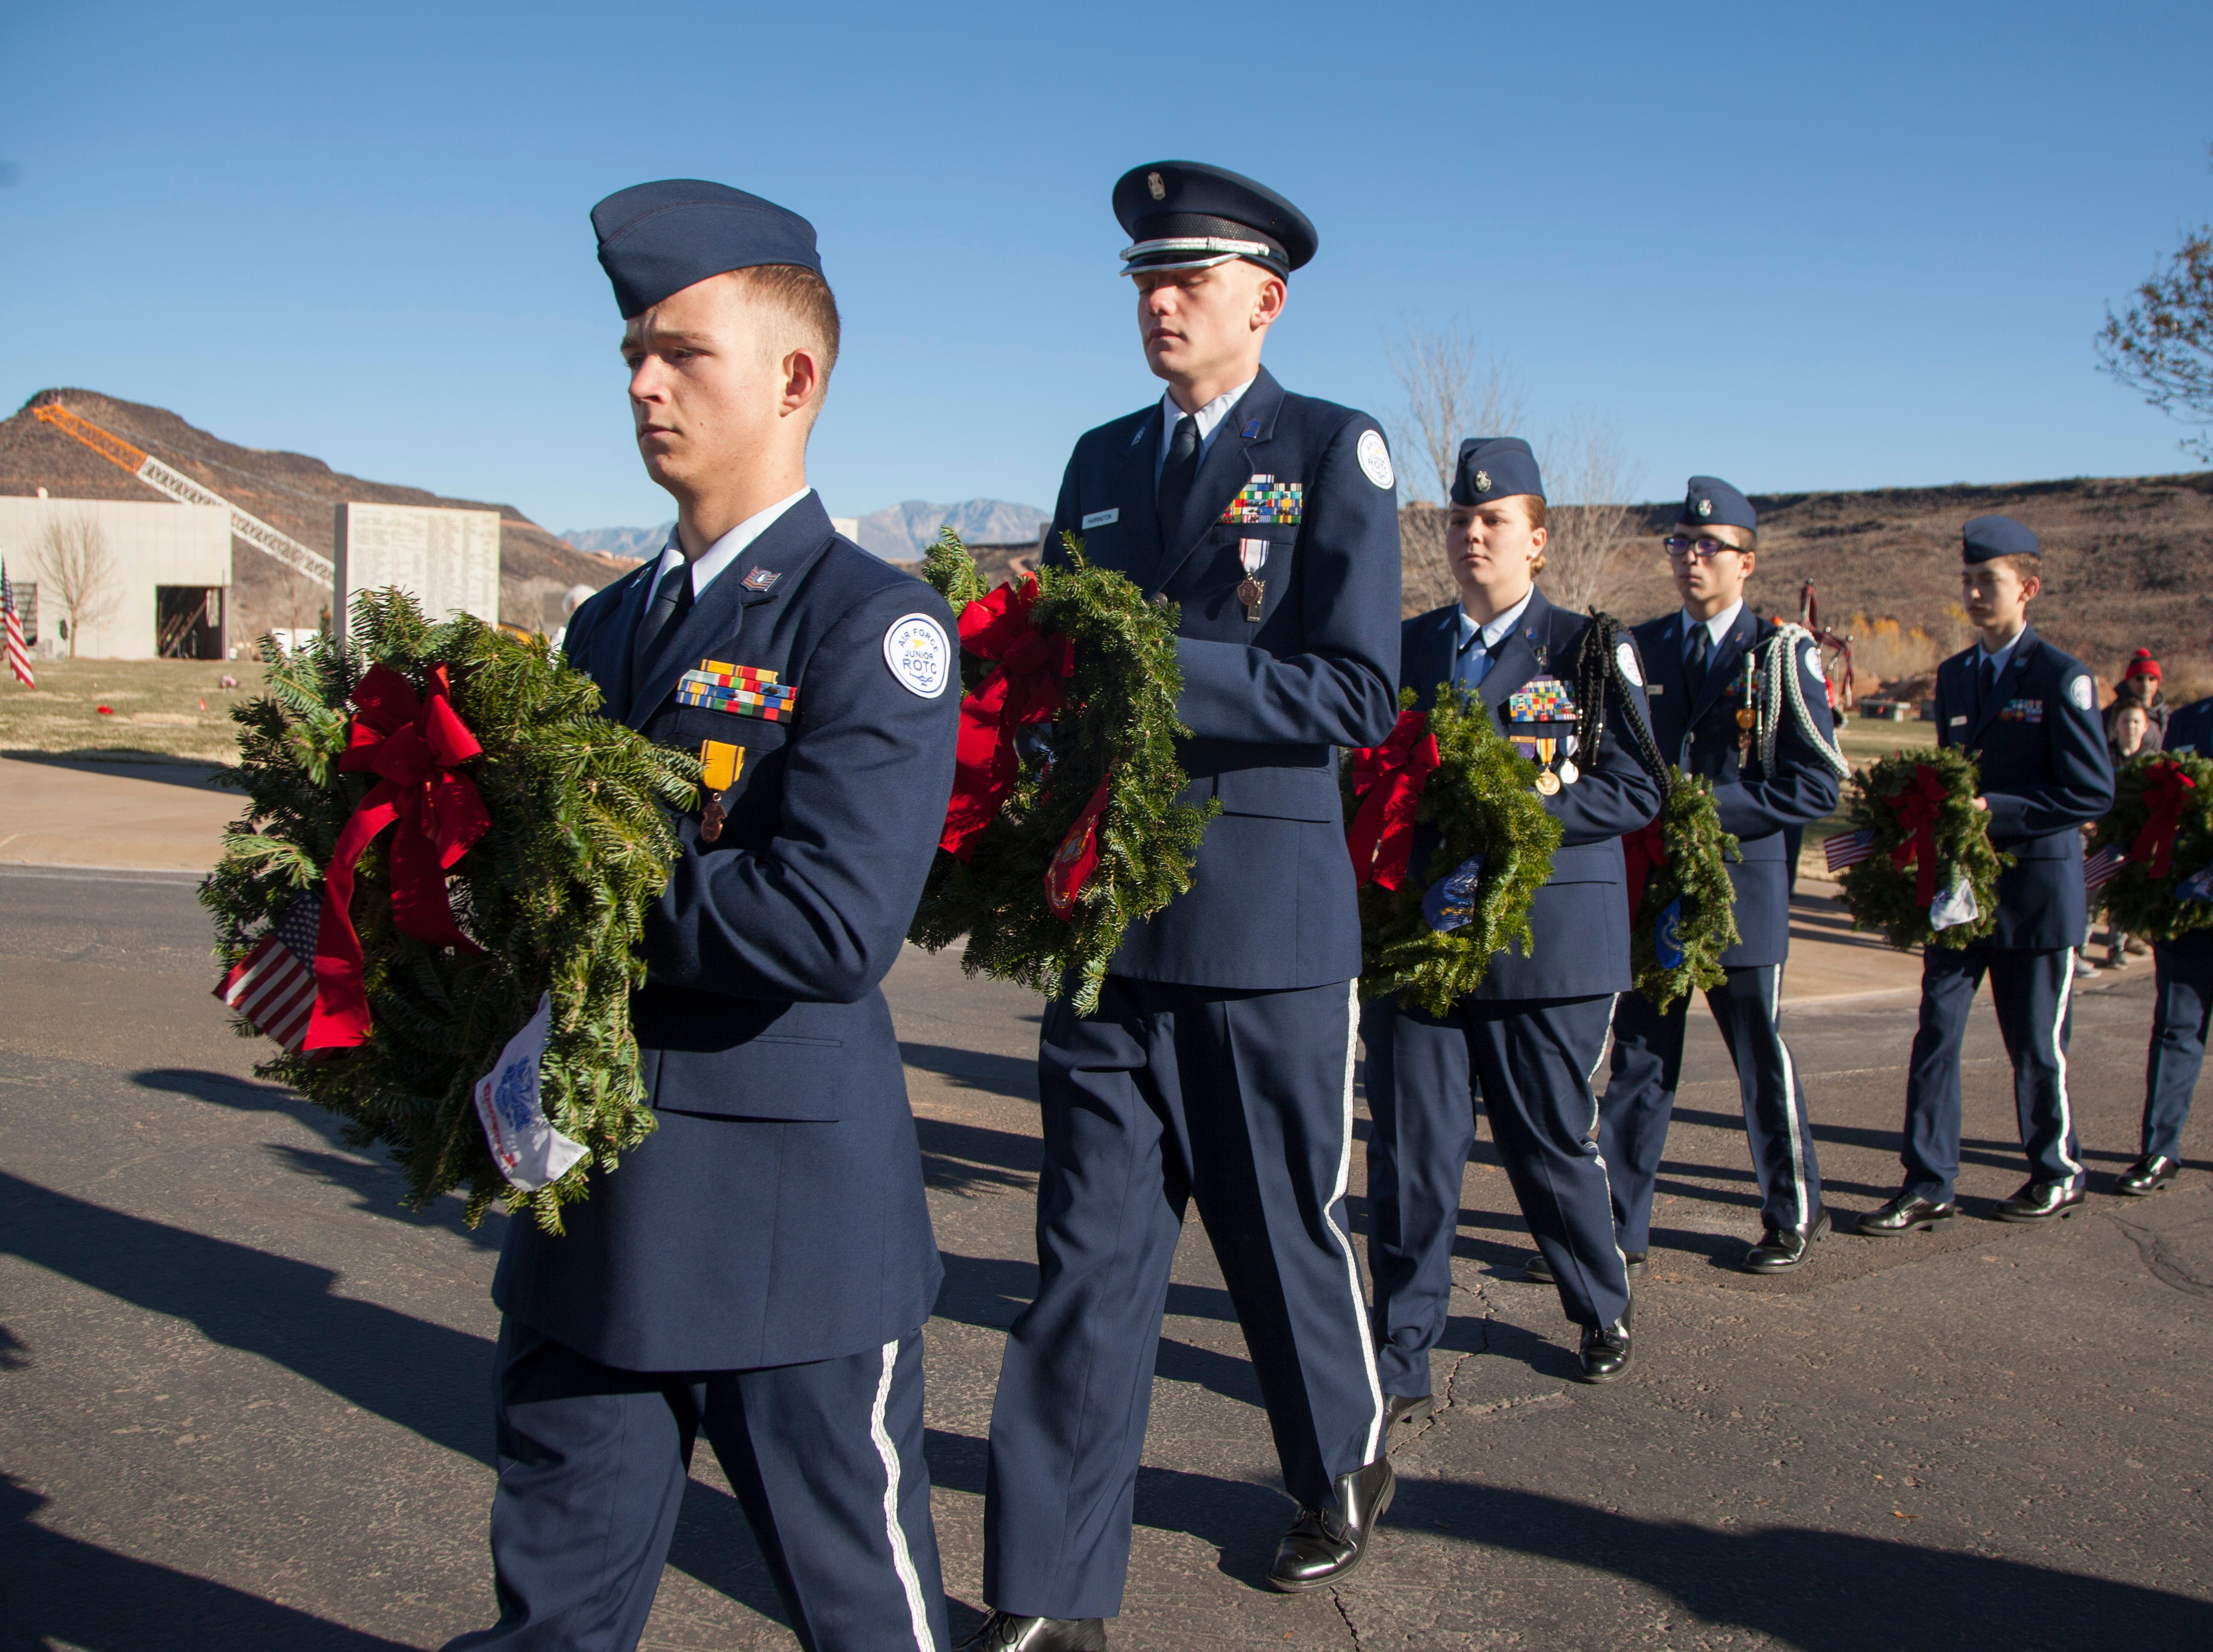 Community members carry wreaths that will placed on the headstones of veterans at the Tonaquint Cemetery in St. George as part of the Wreaths Across America Saturday, Dec. 15, 2018.